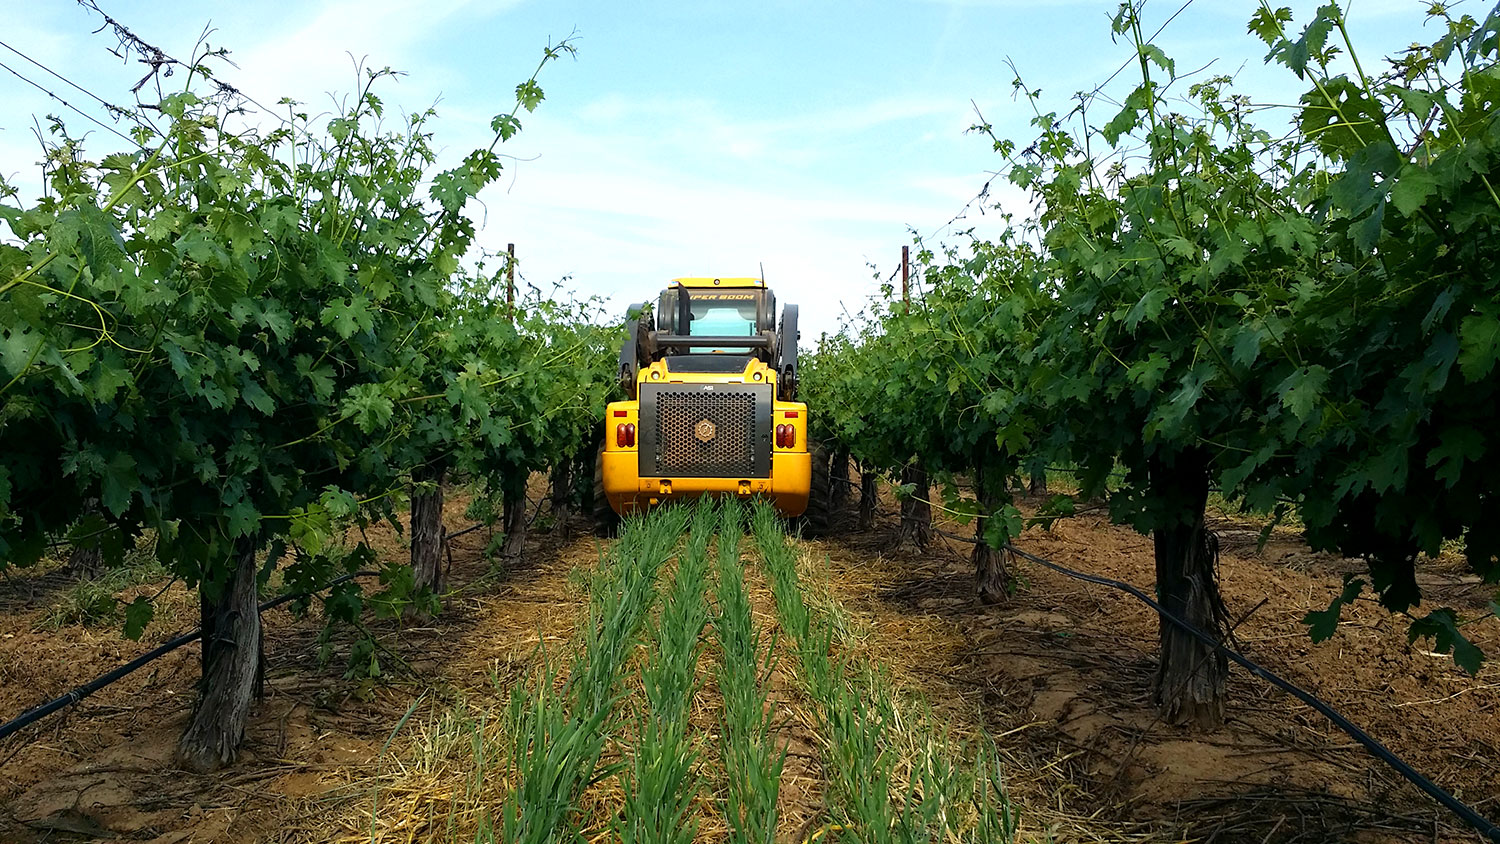 ASI's Forge completes robotic mowing tasks in a California vineyard